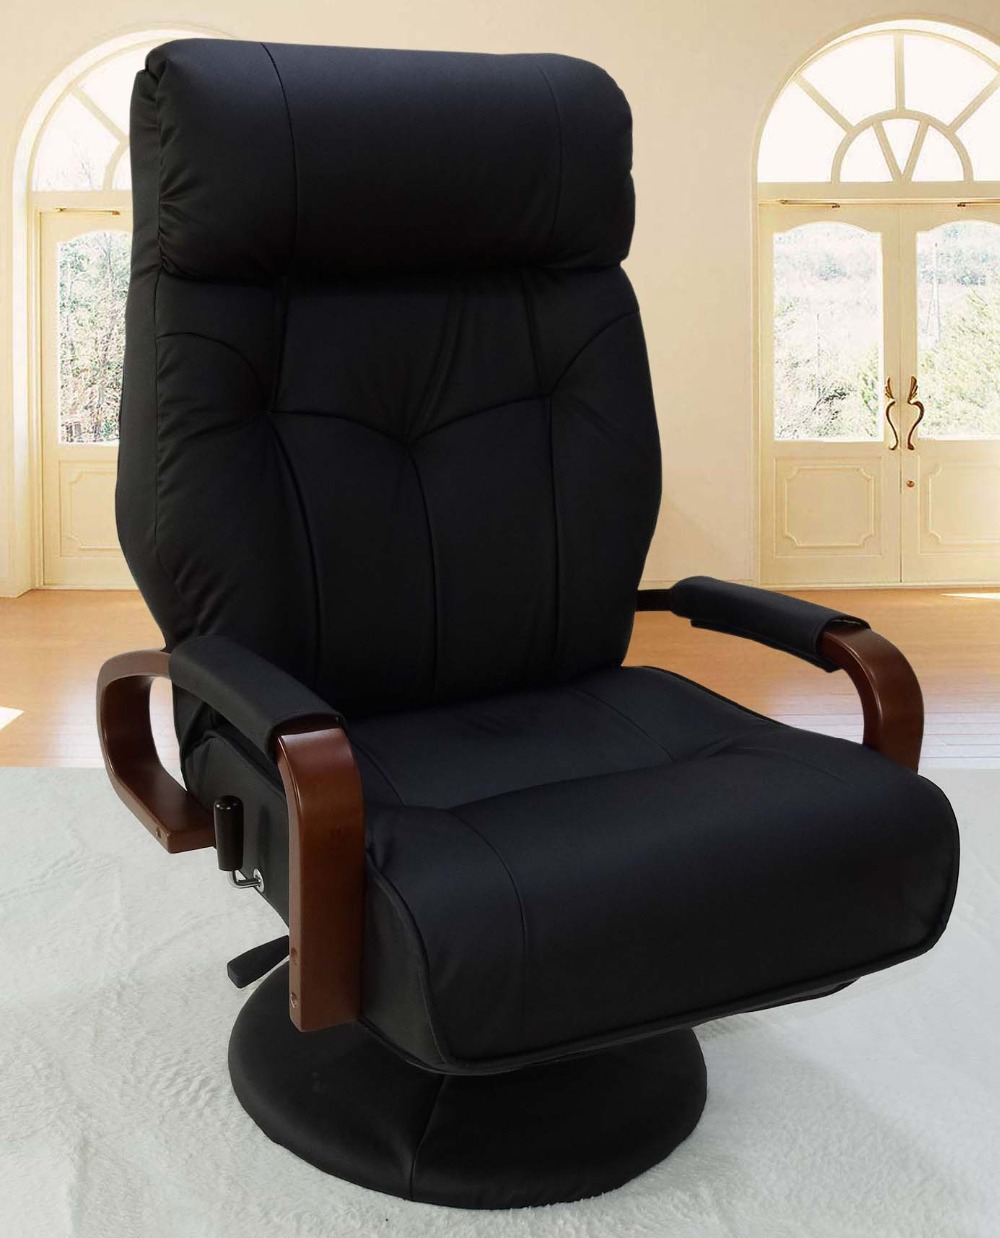 Living Room Chairs For Elderly